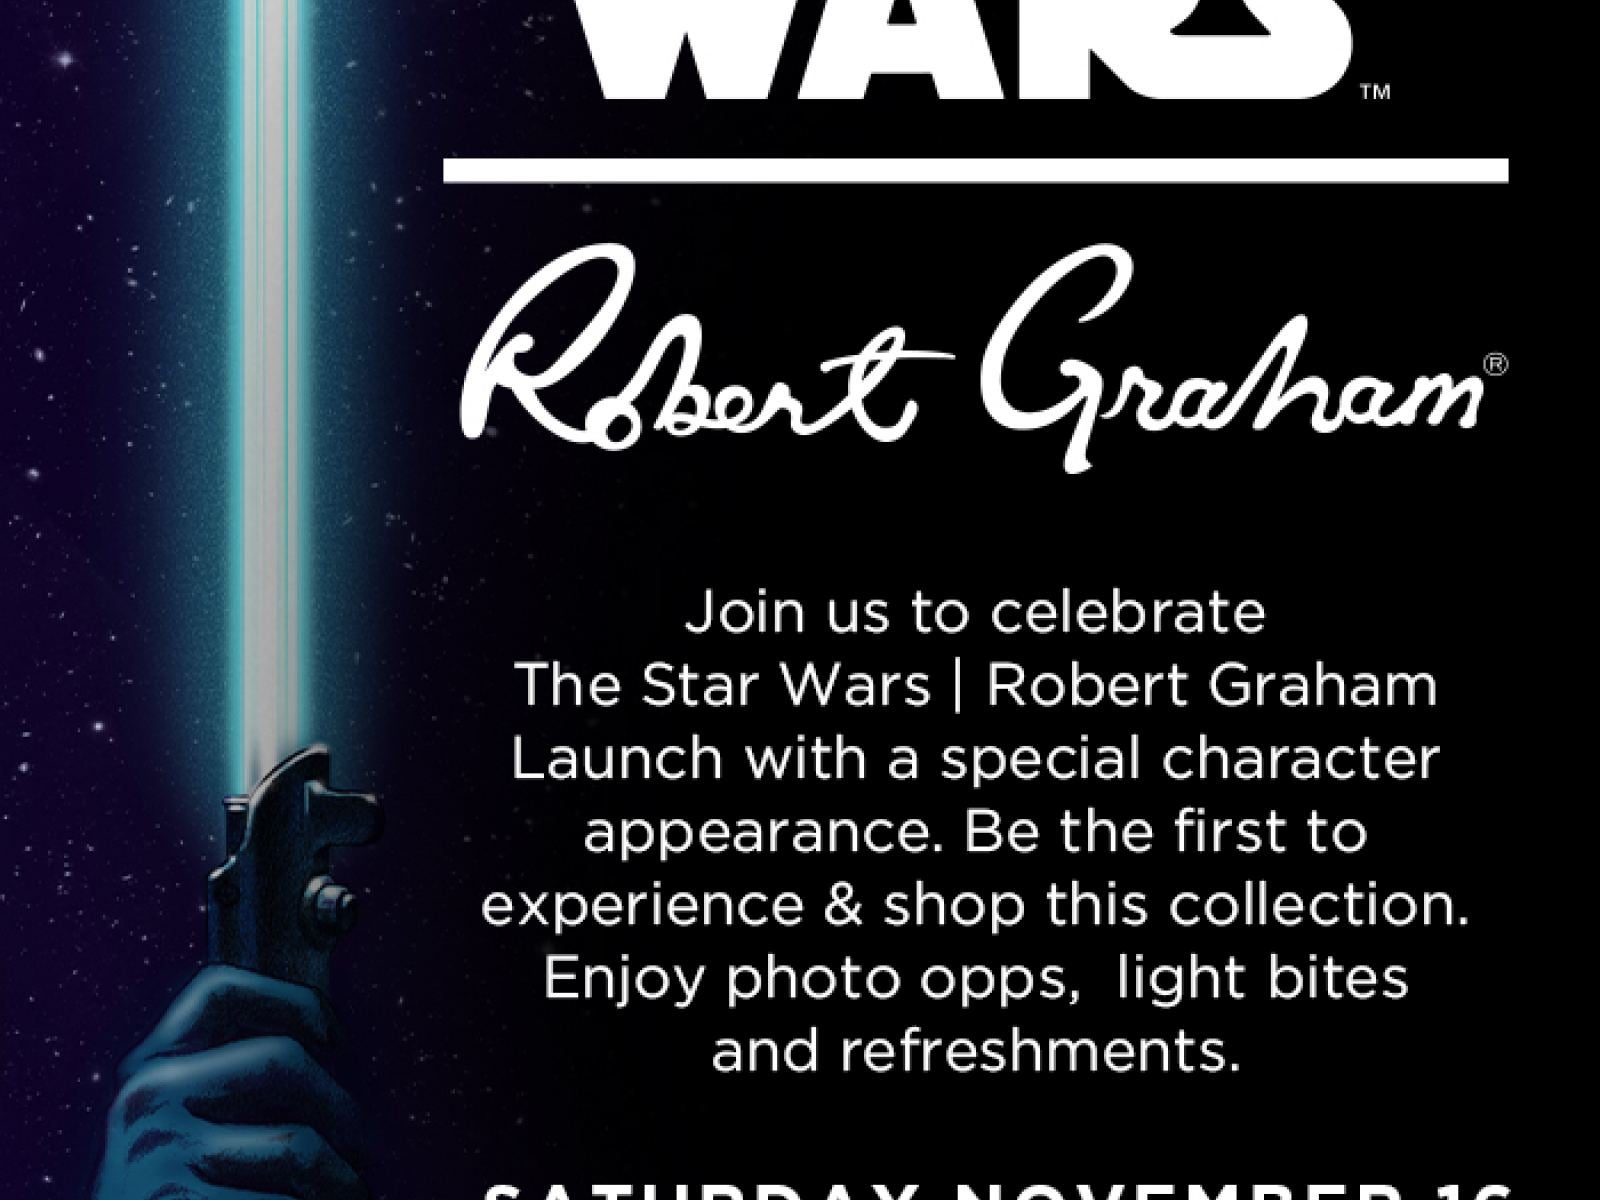 Open to public, free admission.     Join us to celebrate The Star Wars x Robert Graham Launch with a special character appearance. Be the first to experience & shop this collection. Enjoy photo opps, light bites and refreshments.